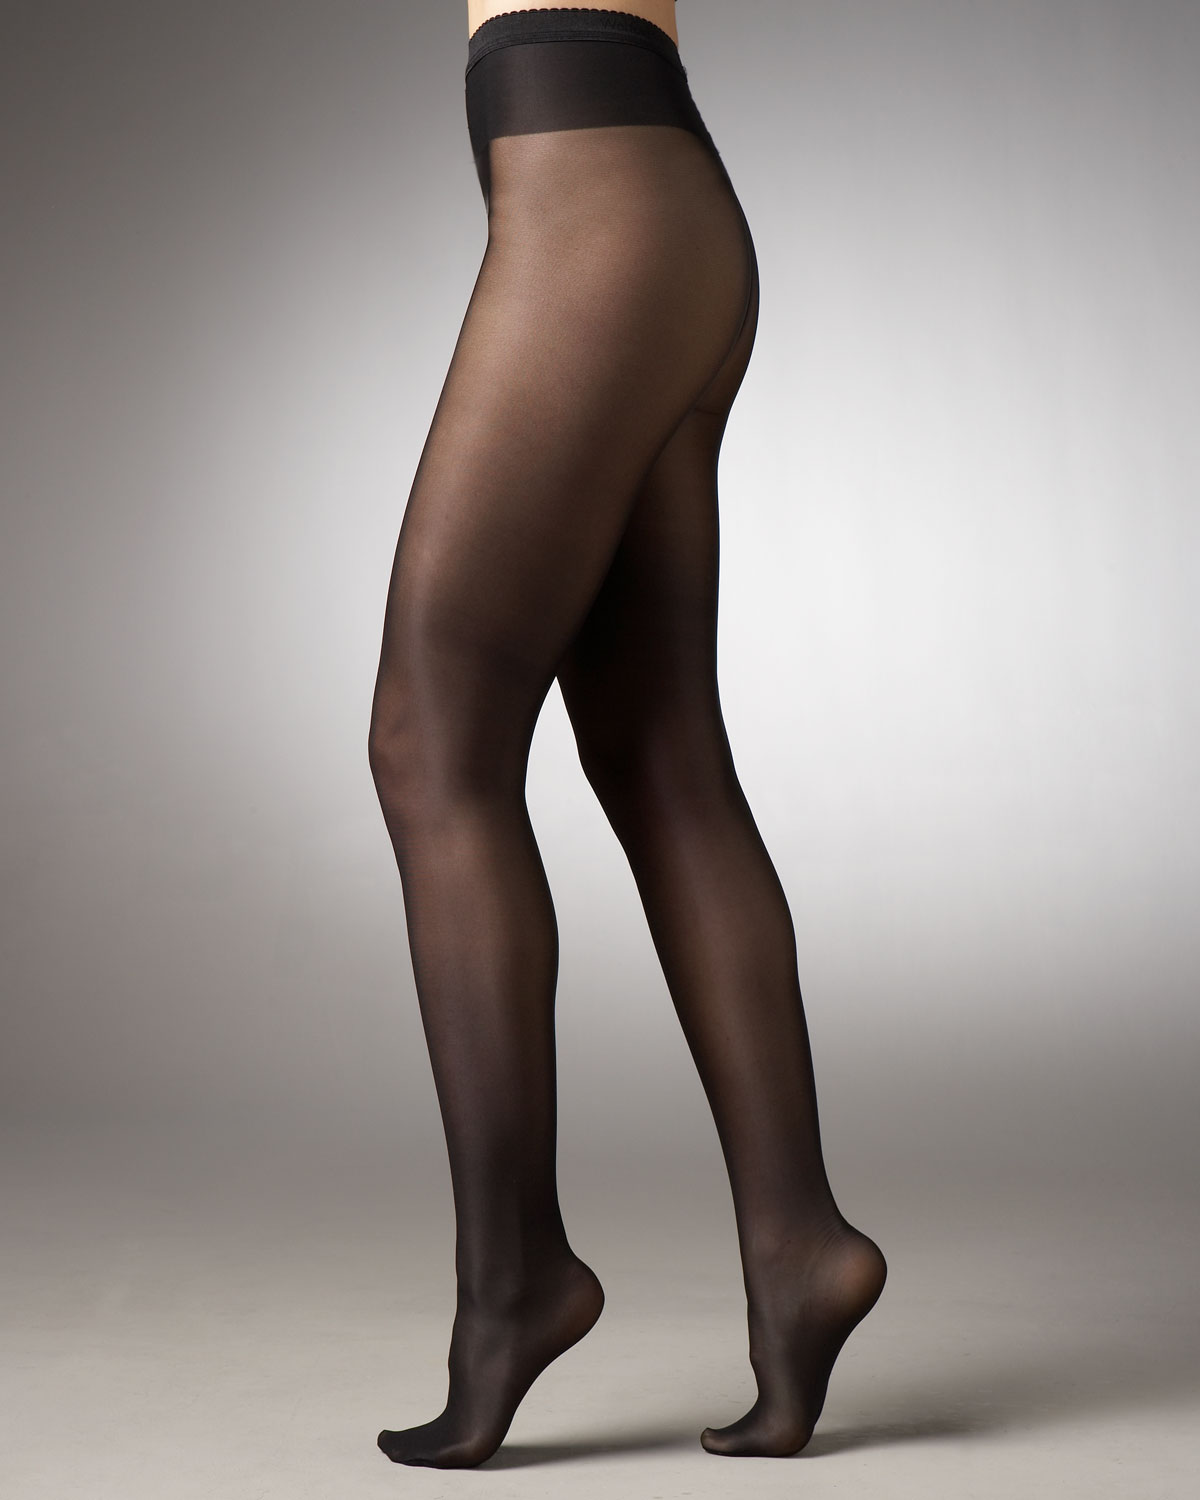 Wolford Neon 40 Glossy Tights in Black